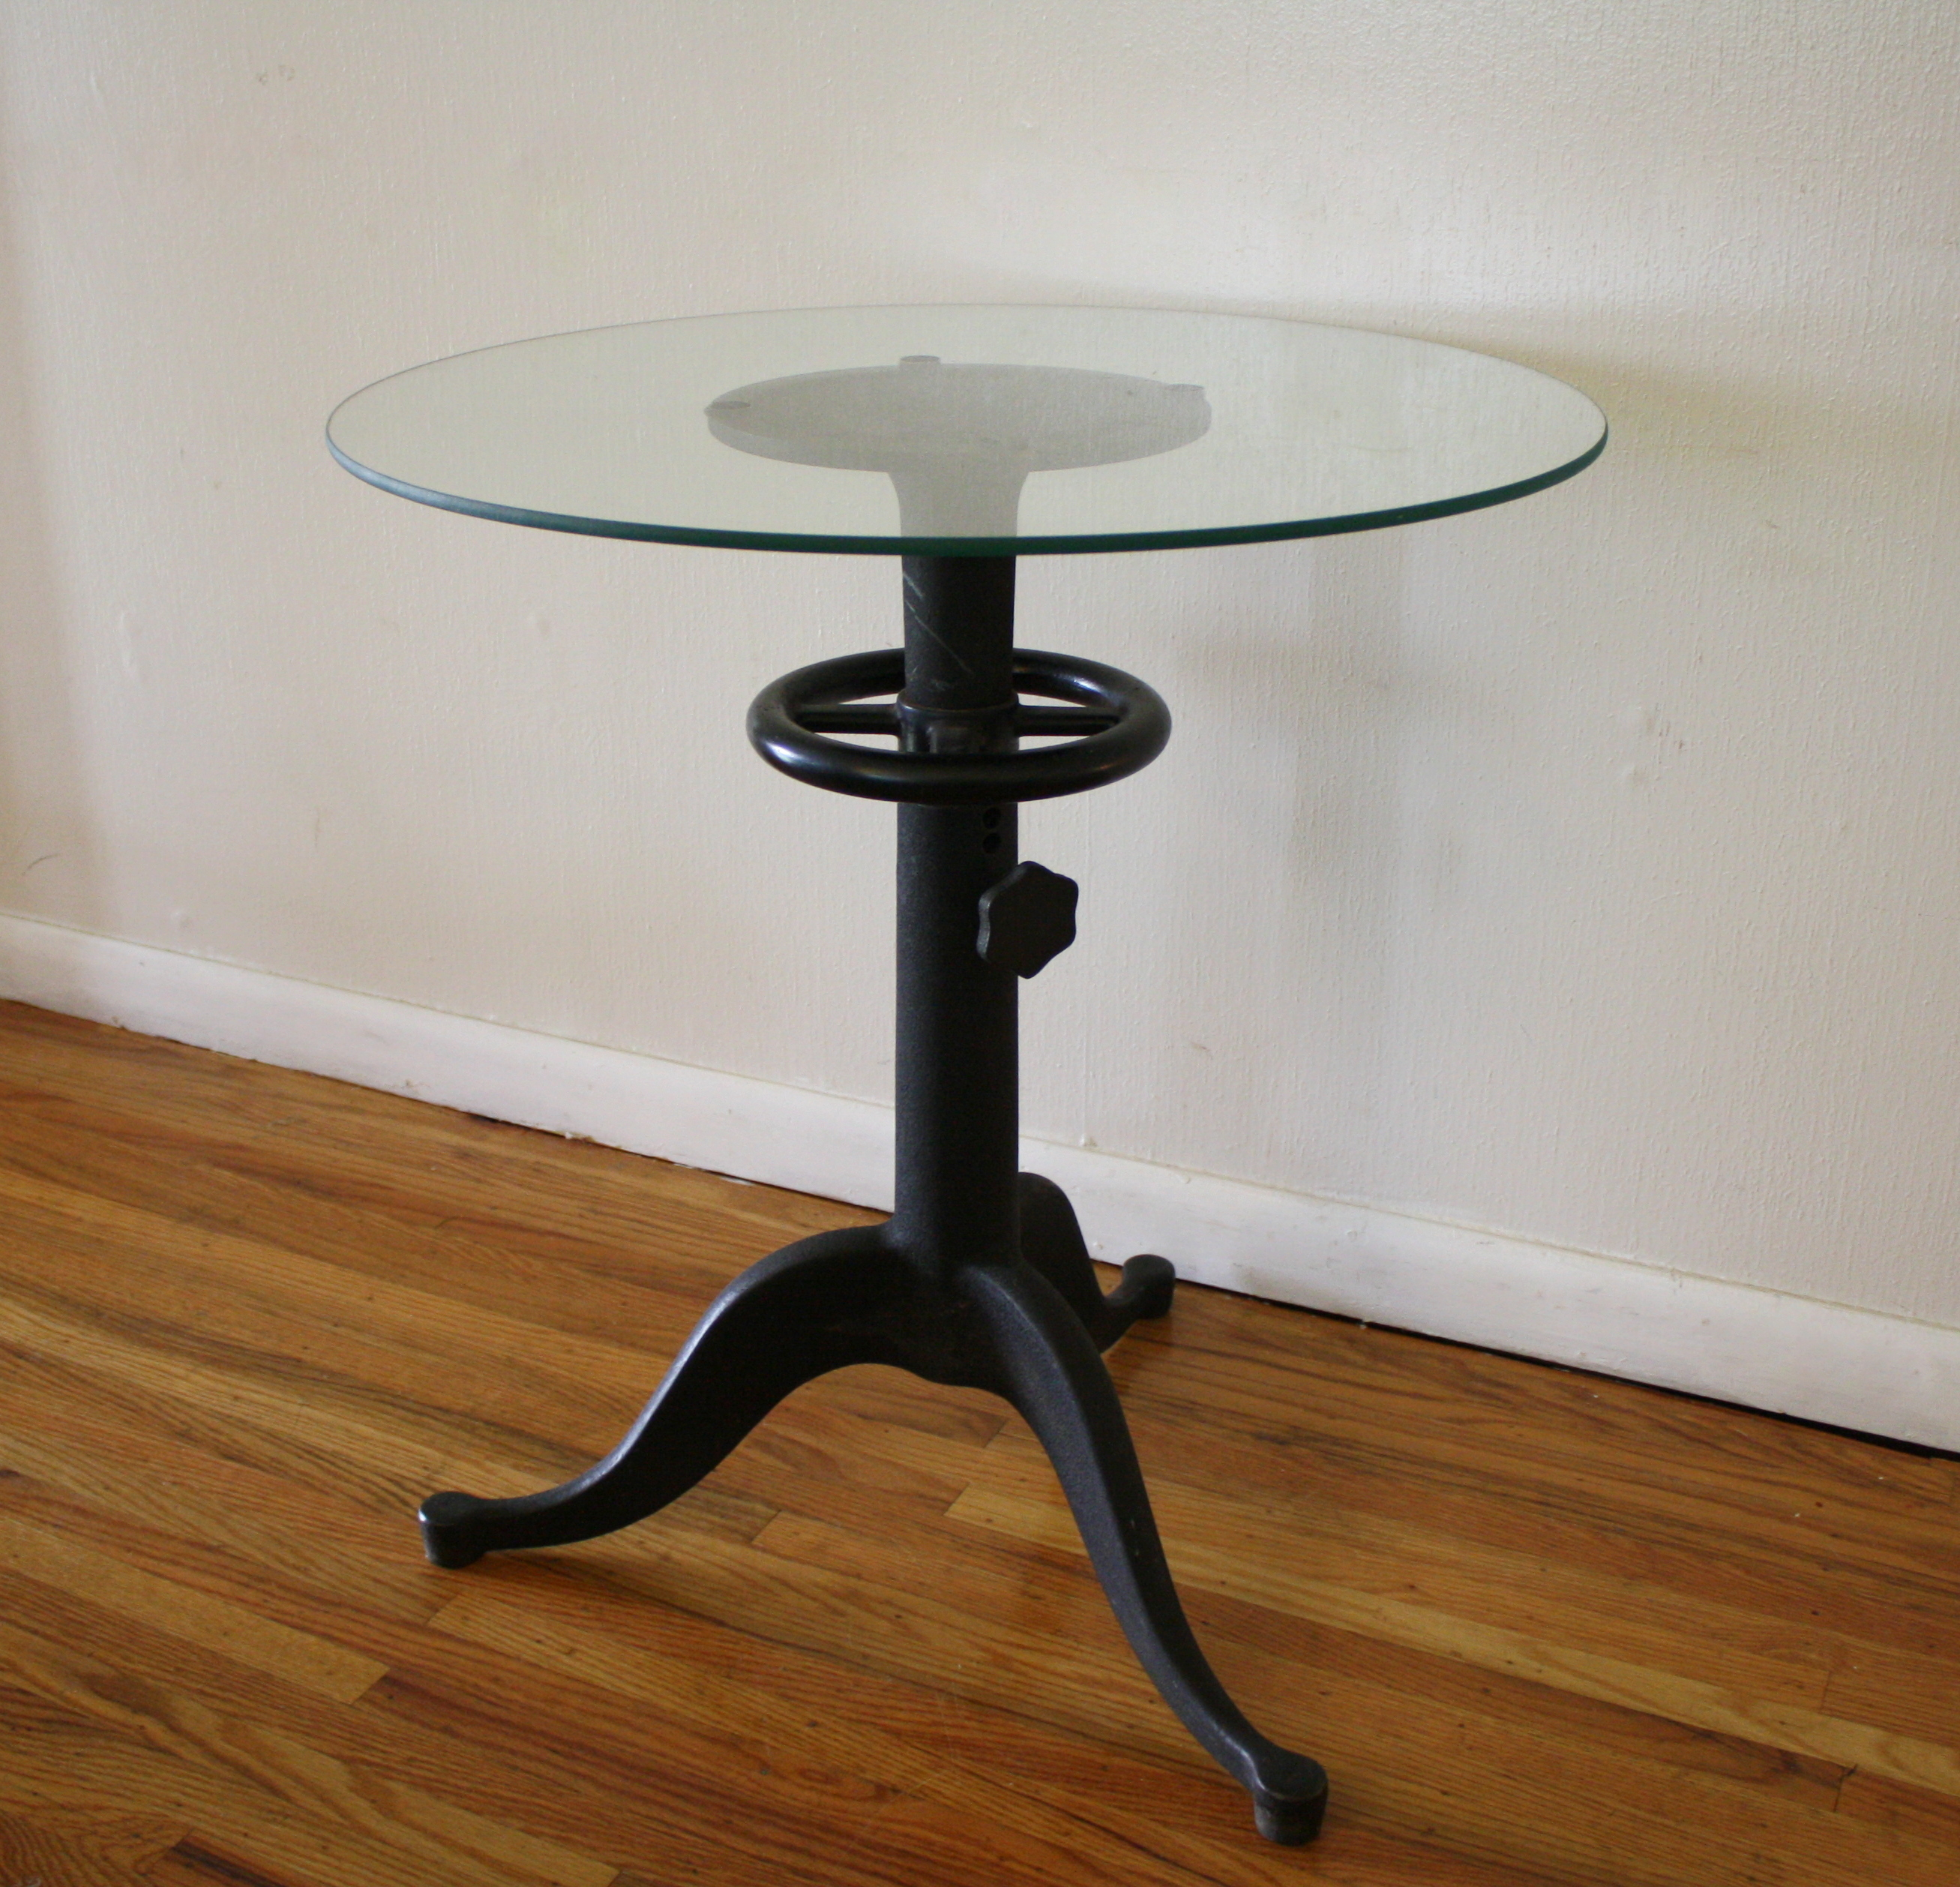 Antique cast iron table with glass top steampunk chic for Cast iron table with glass top